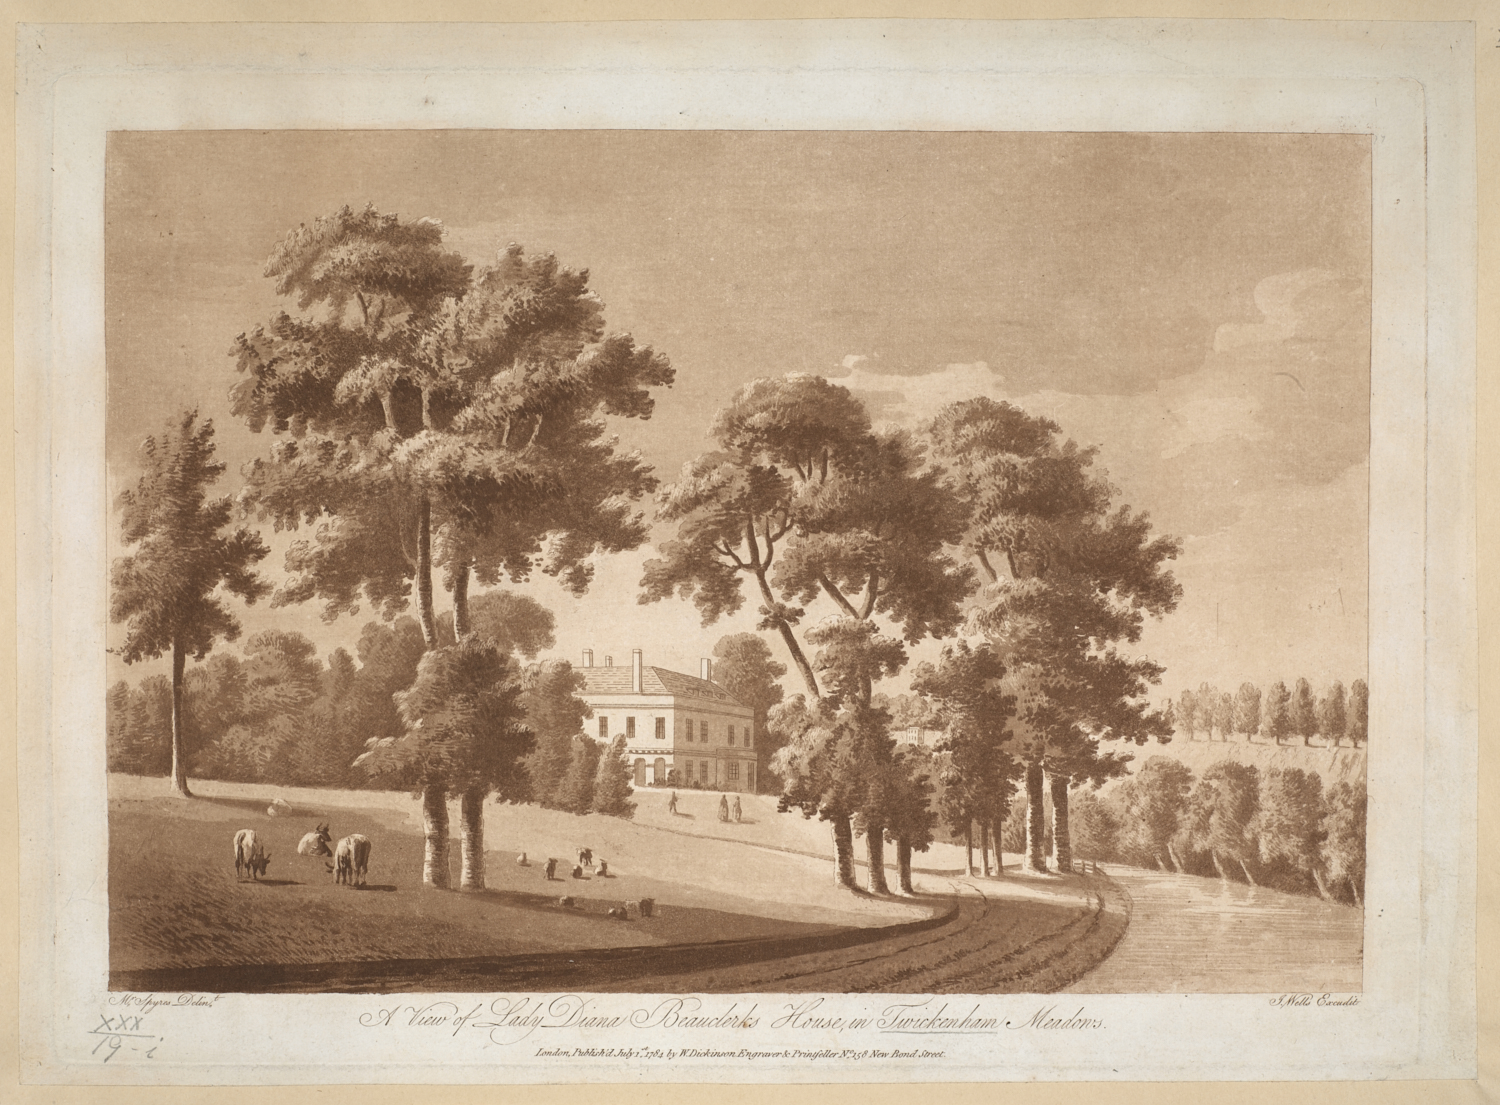 View of Lady Diana Beauclerk's house at Twickenham, the elegant house with stuccoed walls and high chimneys, a wide drive winding through the park towards the house, cattle and sheep grazing on the grass to the left and a few figures on the lawn beyond, wood partially obscuring the house and other trees throughout the scene.  Part of a series of aquatint views of Twickenham, engraved by Wells, after Spyers, and published by Dickinson.  Titled 'View of Lady Diana Beauclerk's House in Twickenham Meadows, by Spyres; engraved by Wells.' in the Catalogue of Maps, Prints, Drawings, etc., forming the geographical and topographical collection attached to the Library of his late Majesty King George the third, etc., London, 1829.